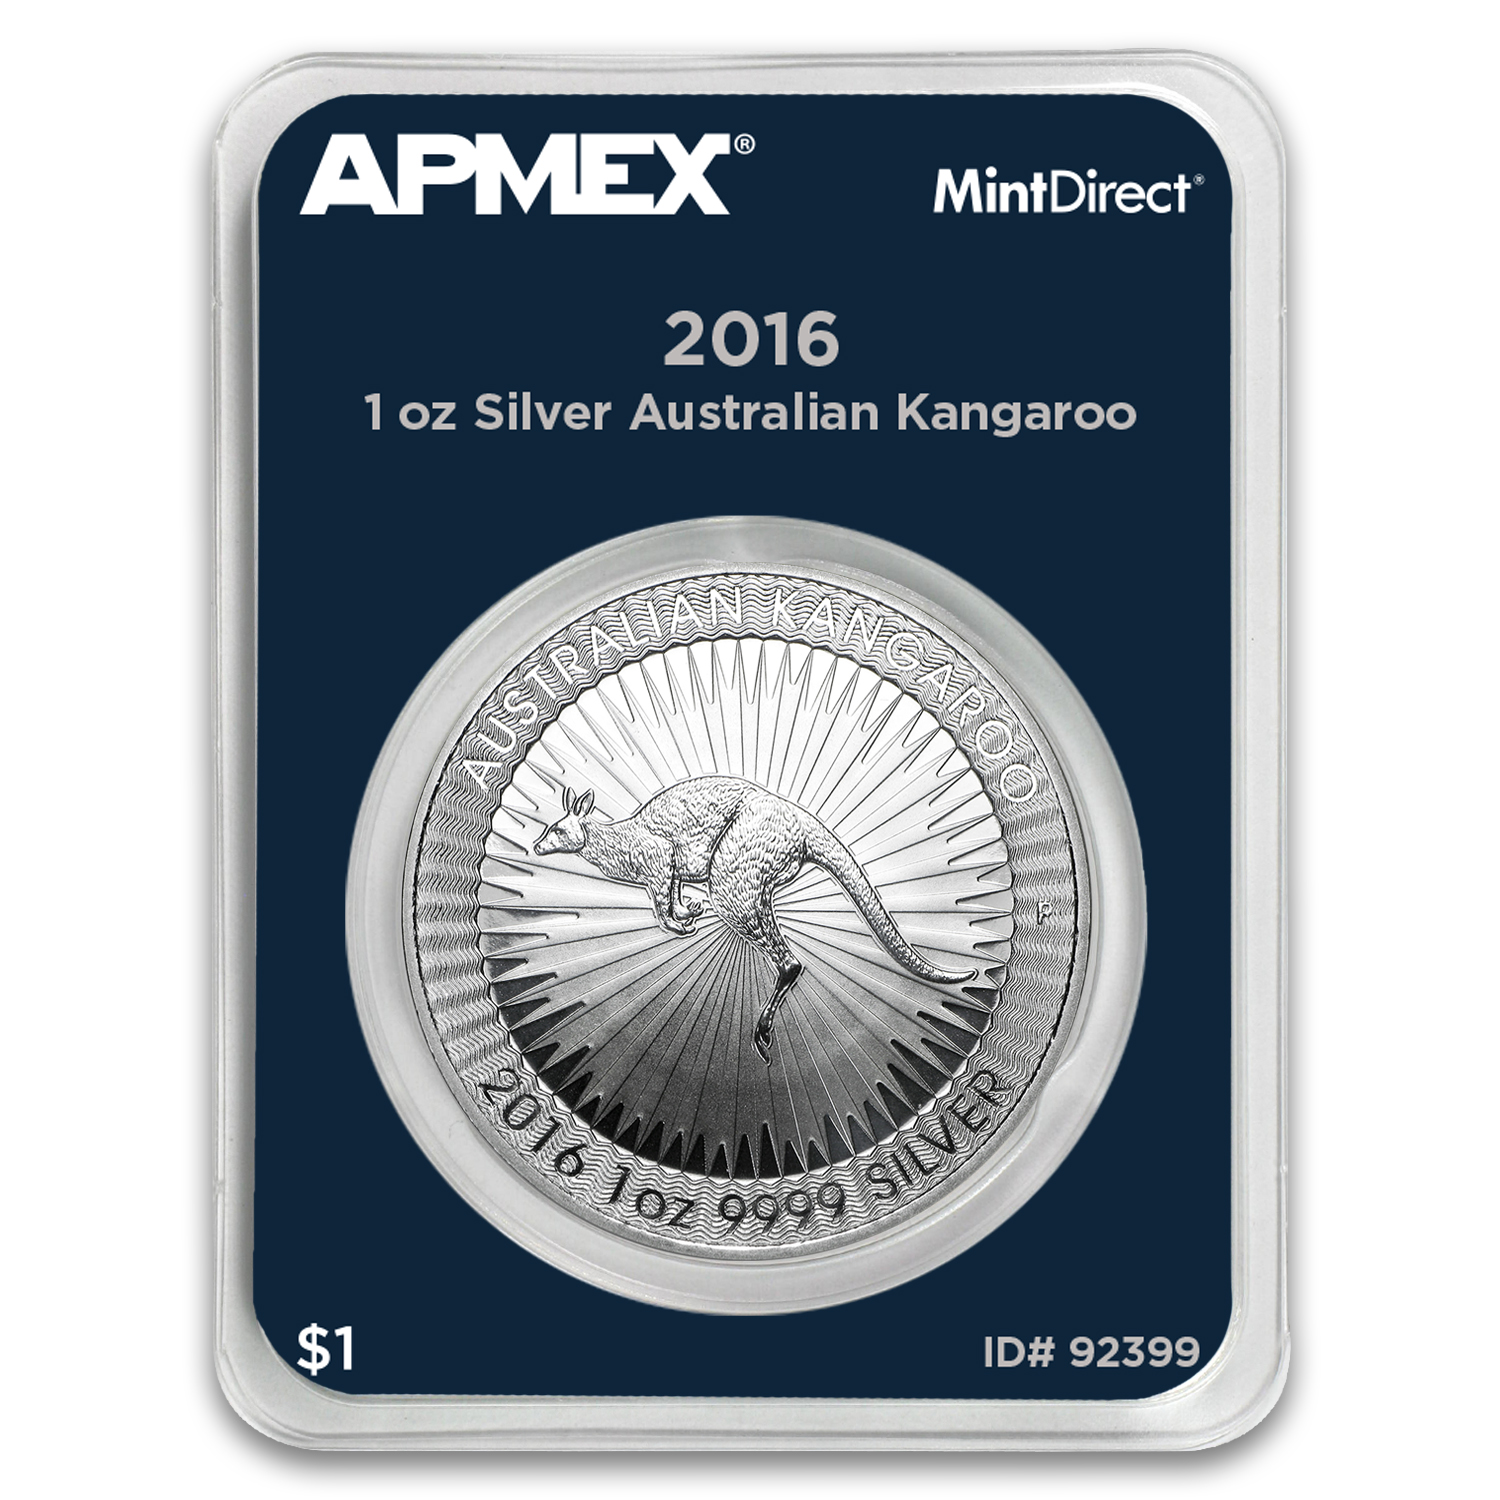 2016 Australia 1 oz Silver Kangaroo (MintDirect® Single)